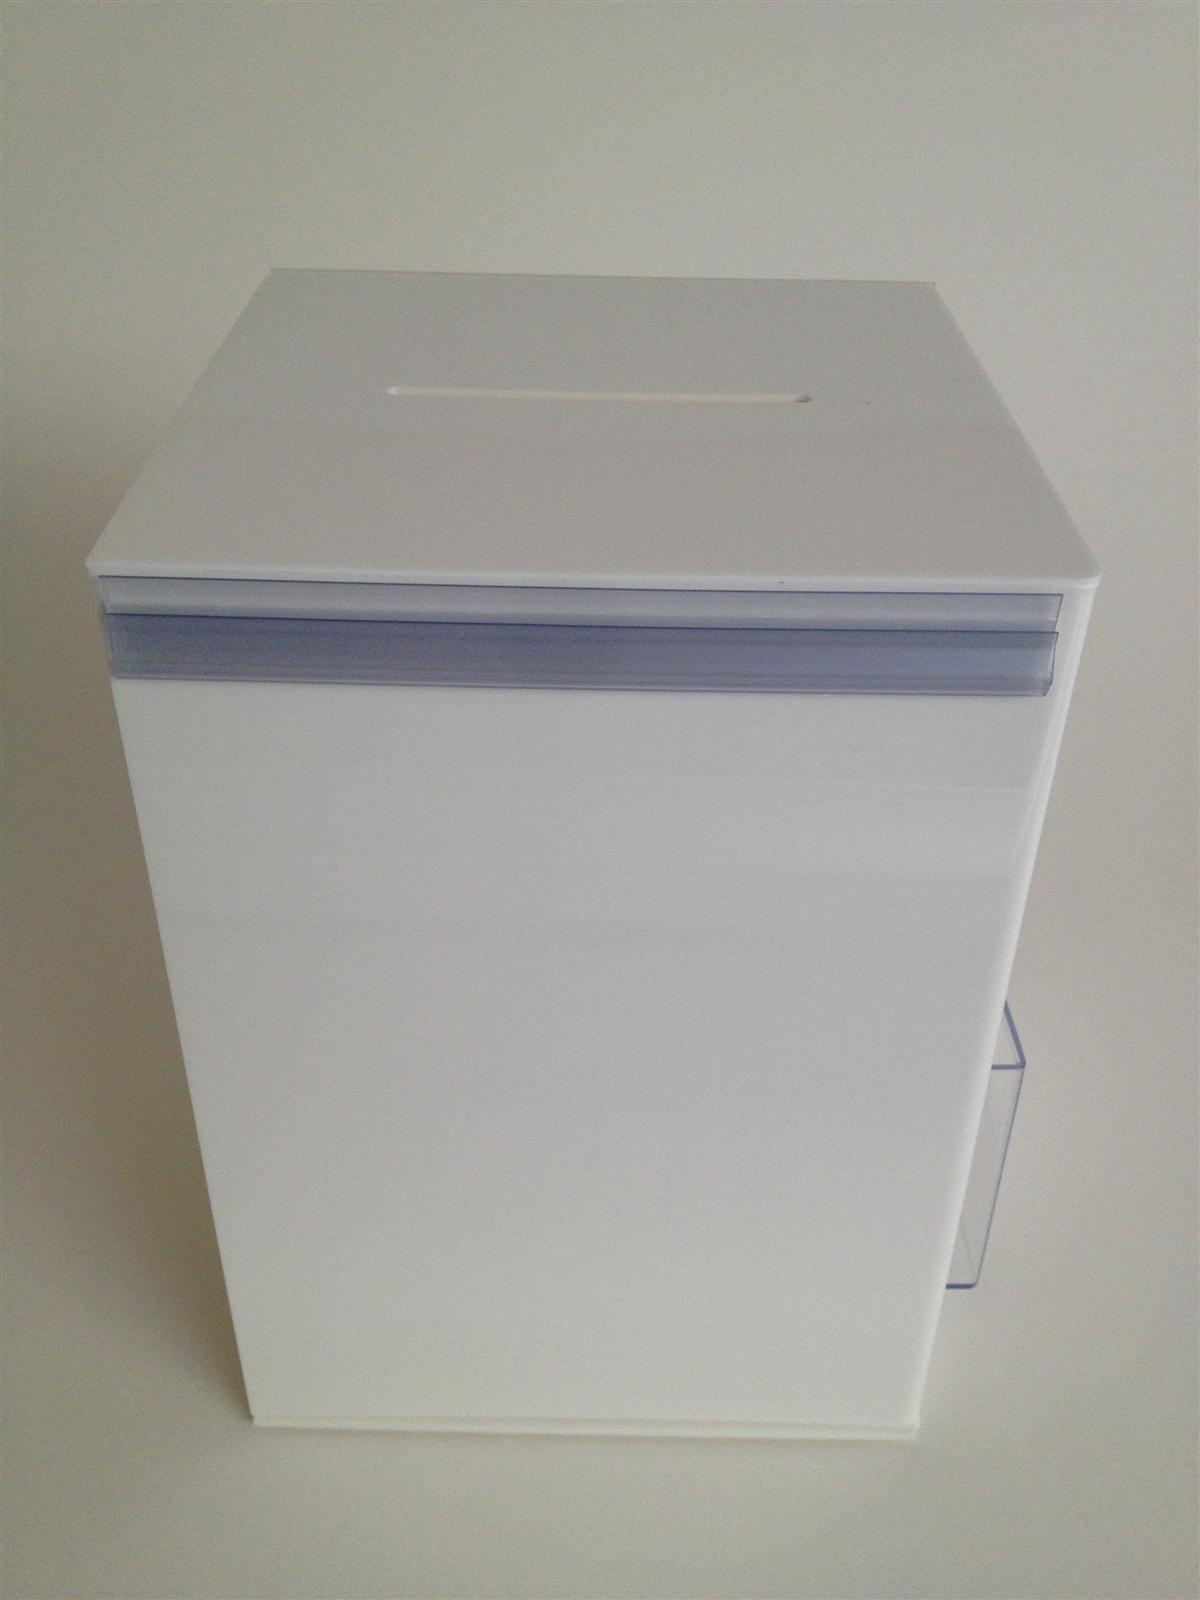 Suggestion Ballot Collection Box with Information Holder